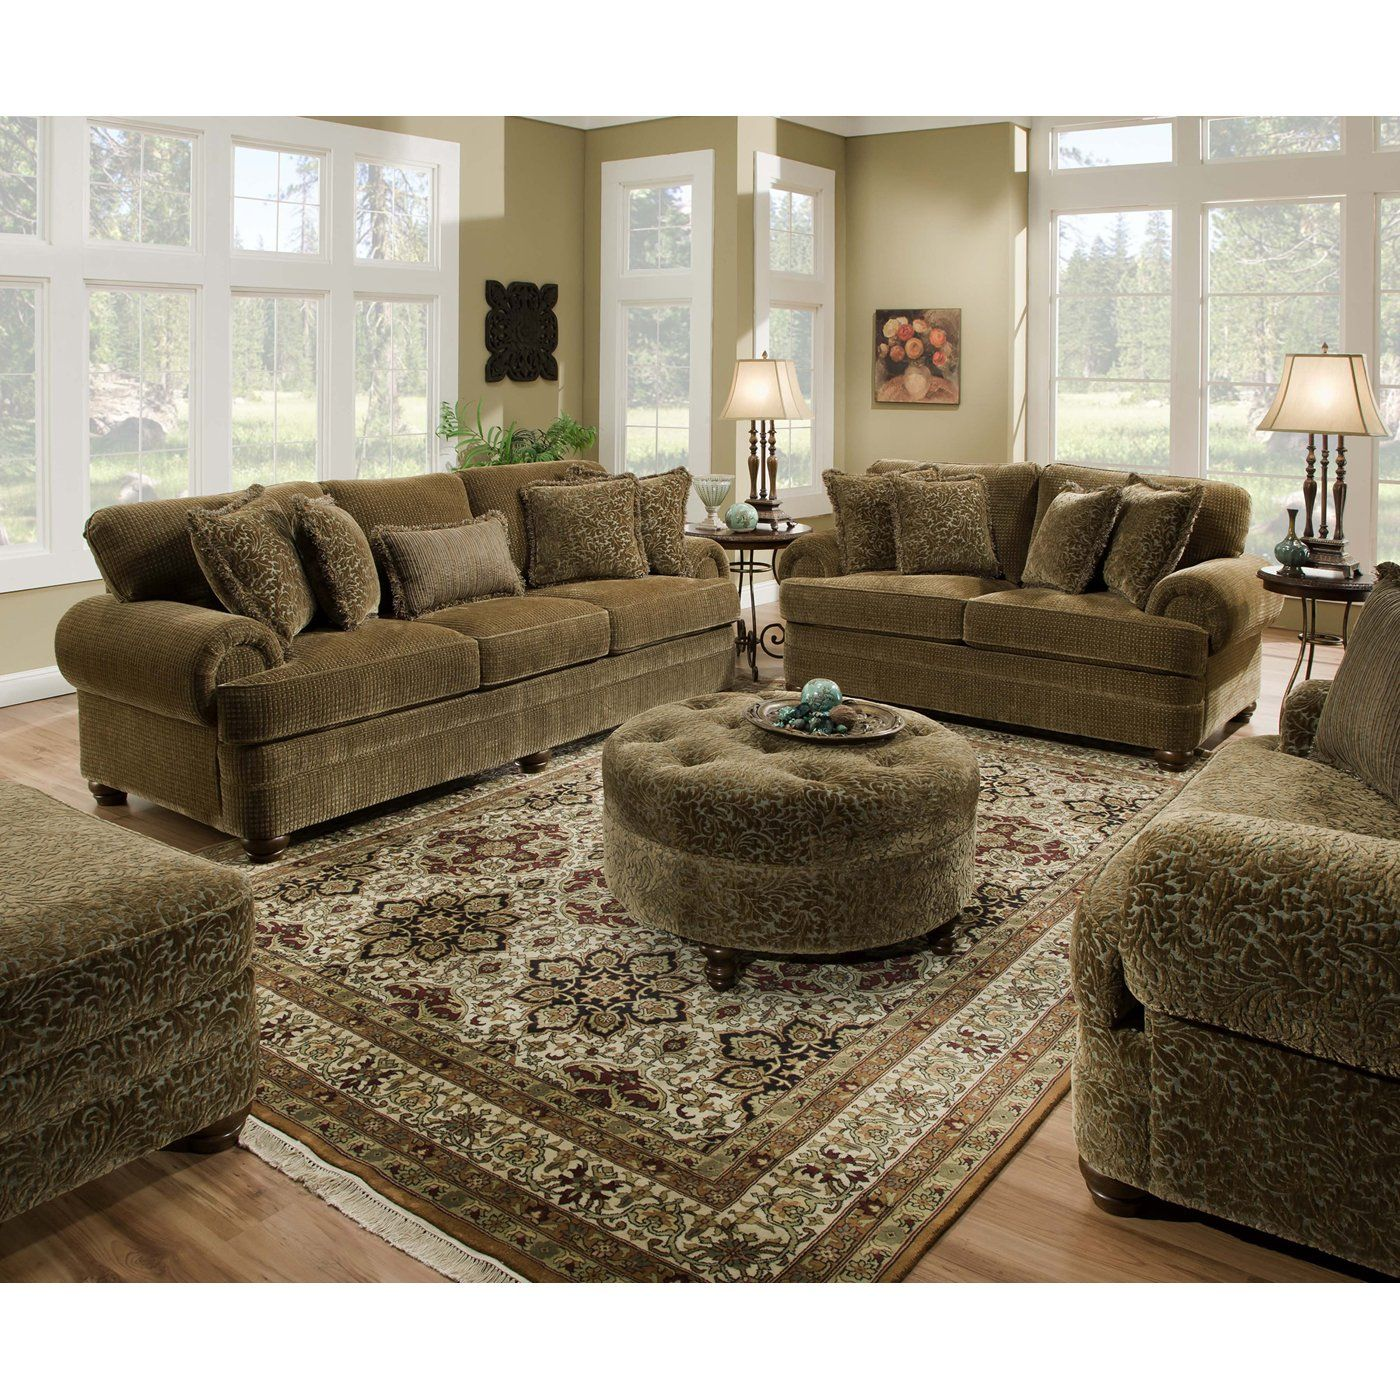 Simmons Upholstery 90100 Simmons Beautyrest Sofa Set